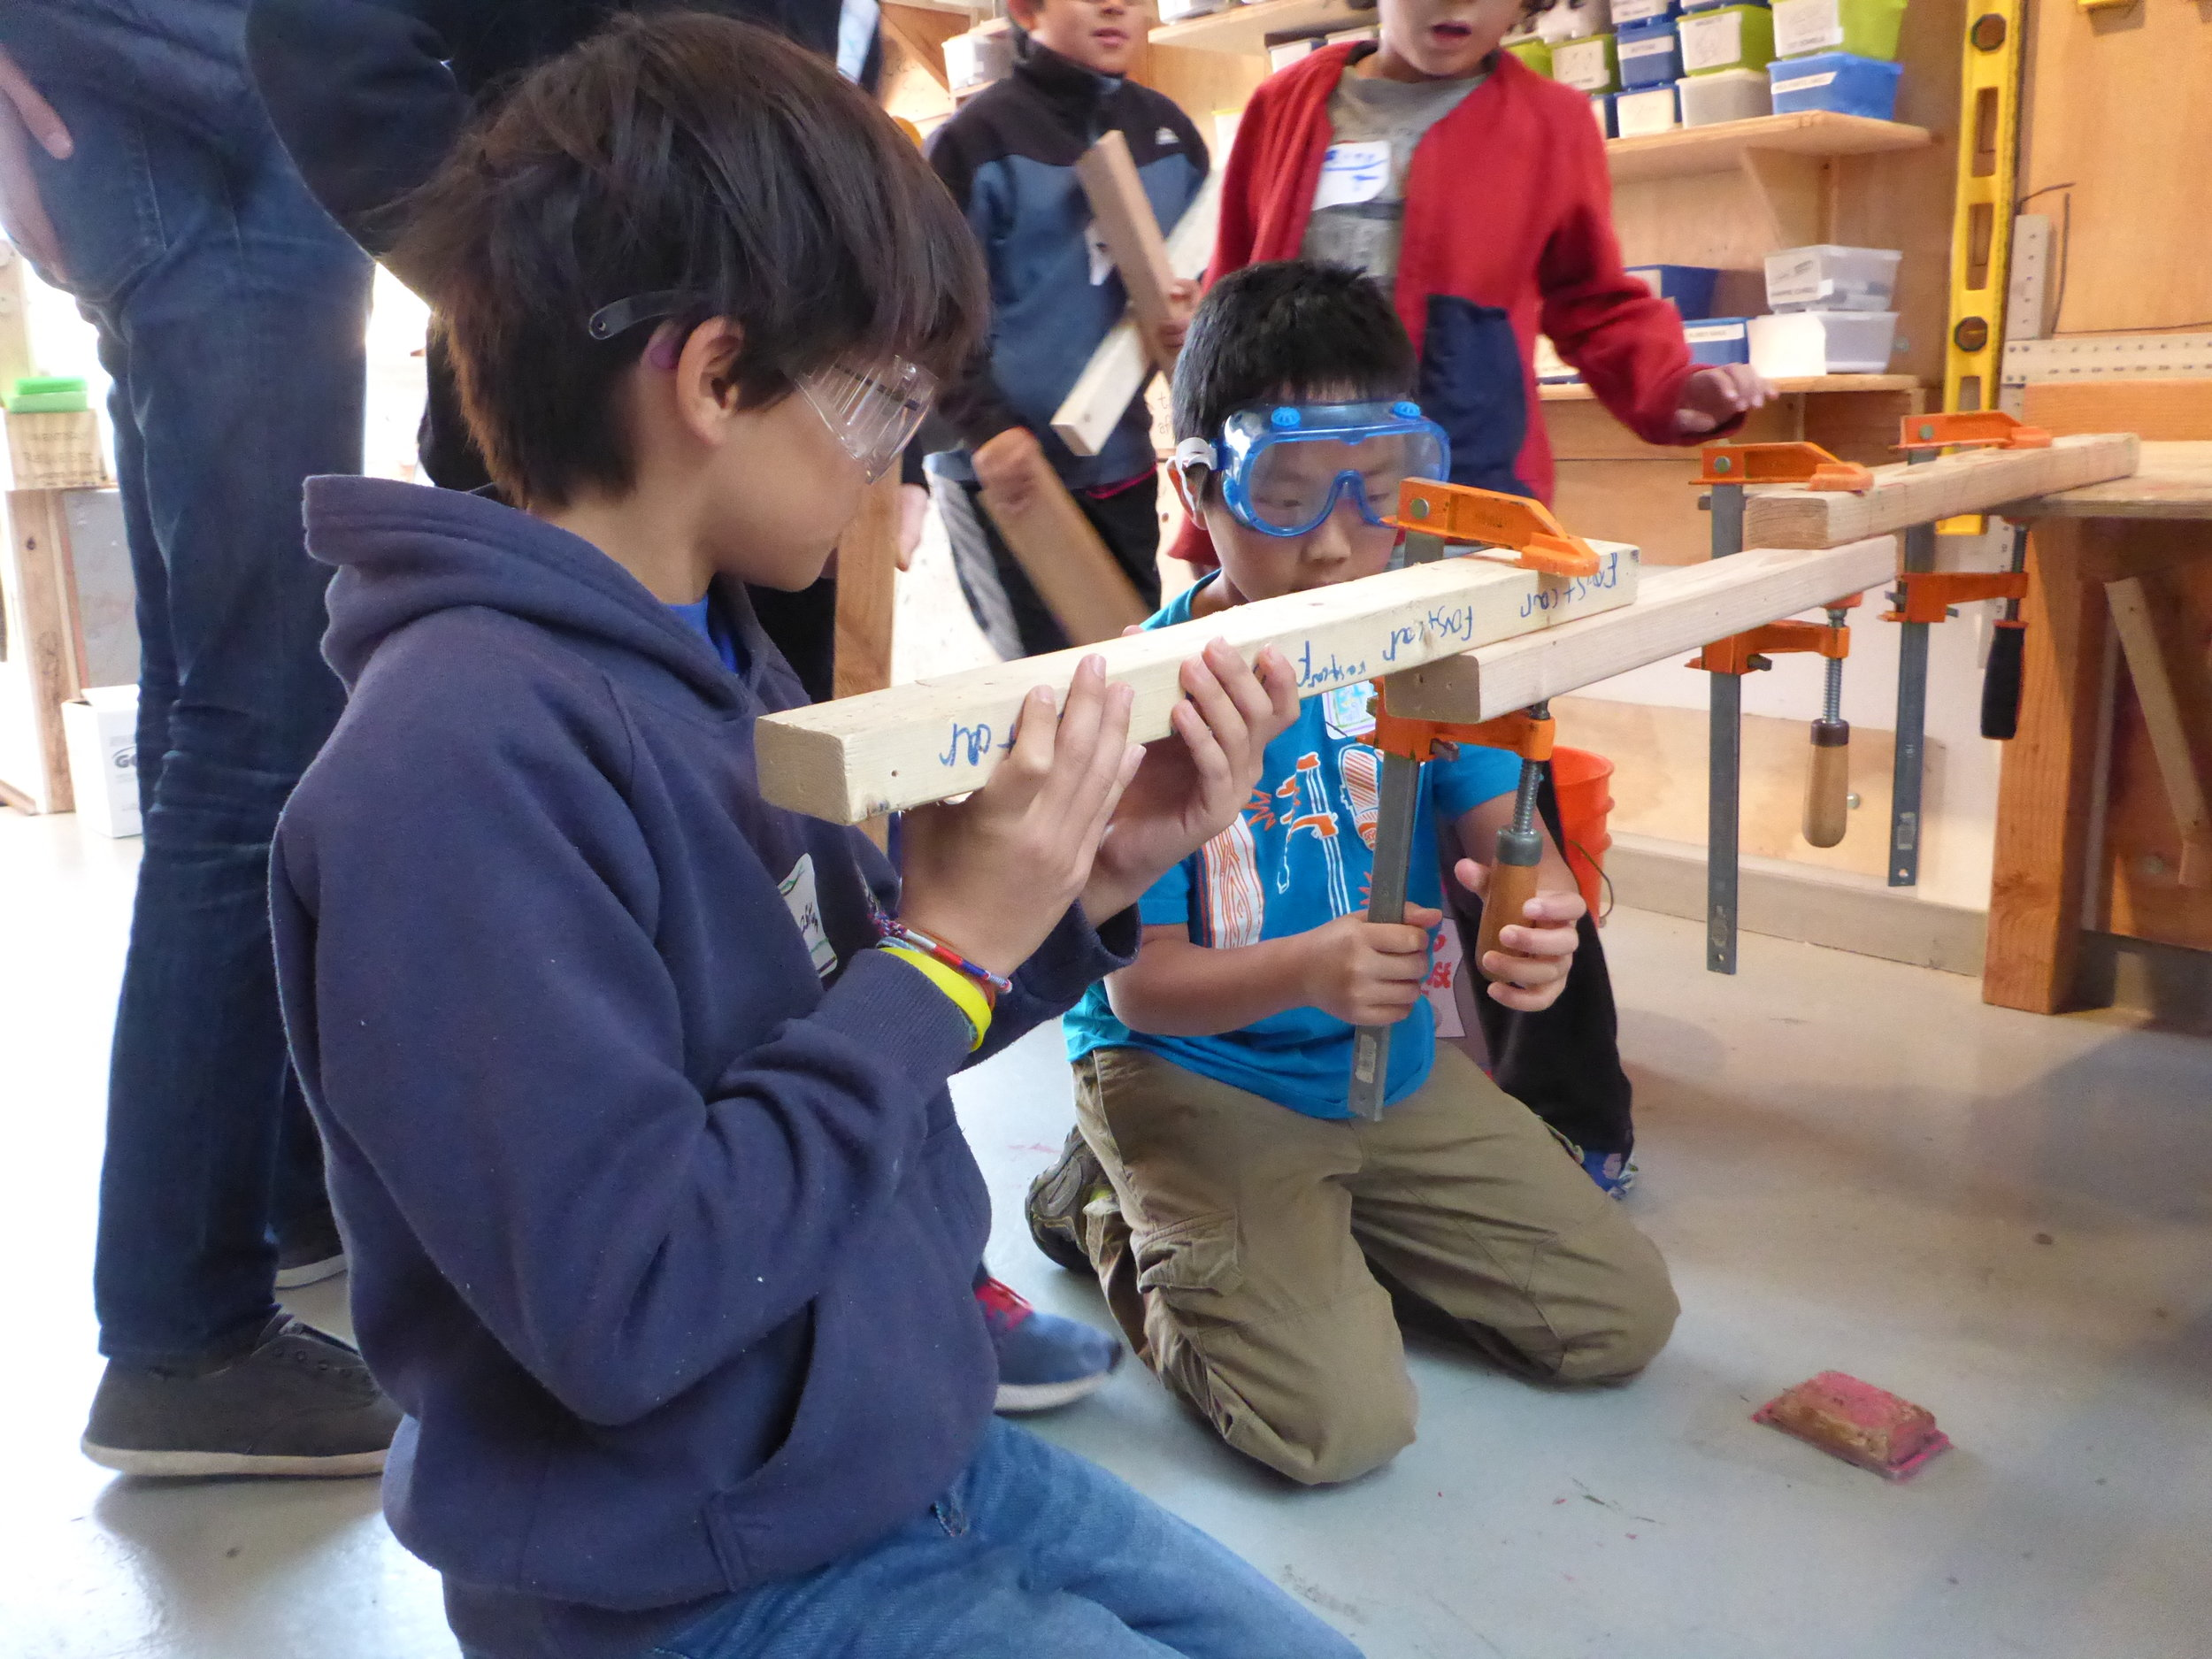 Also! We practiced using clamps to make silly structures.